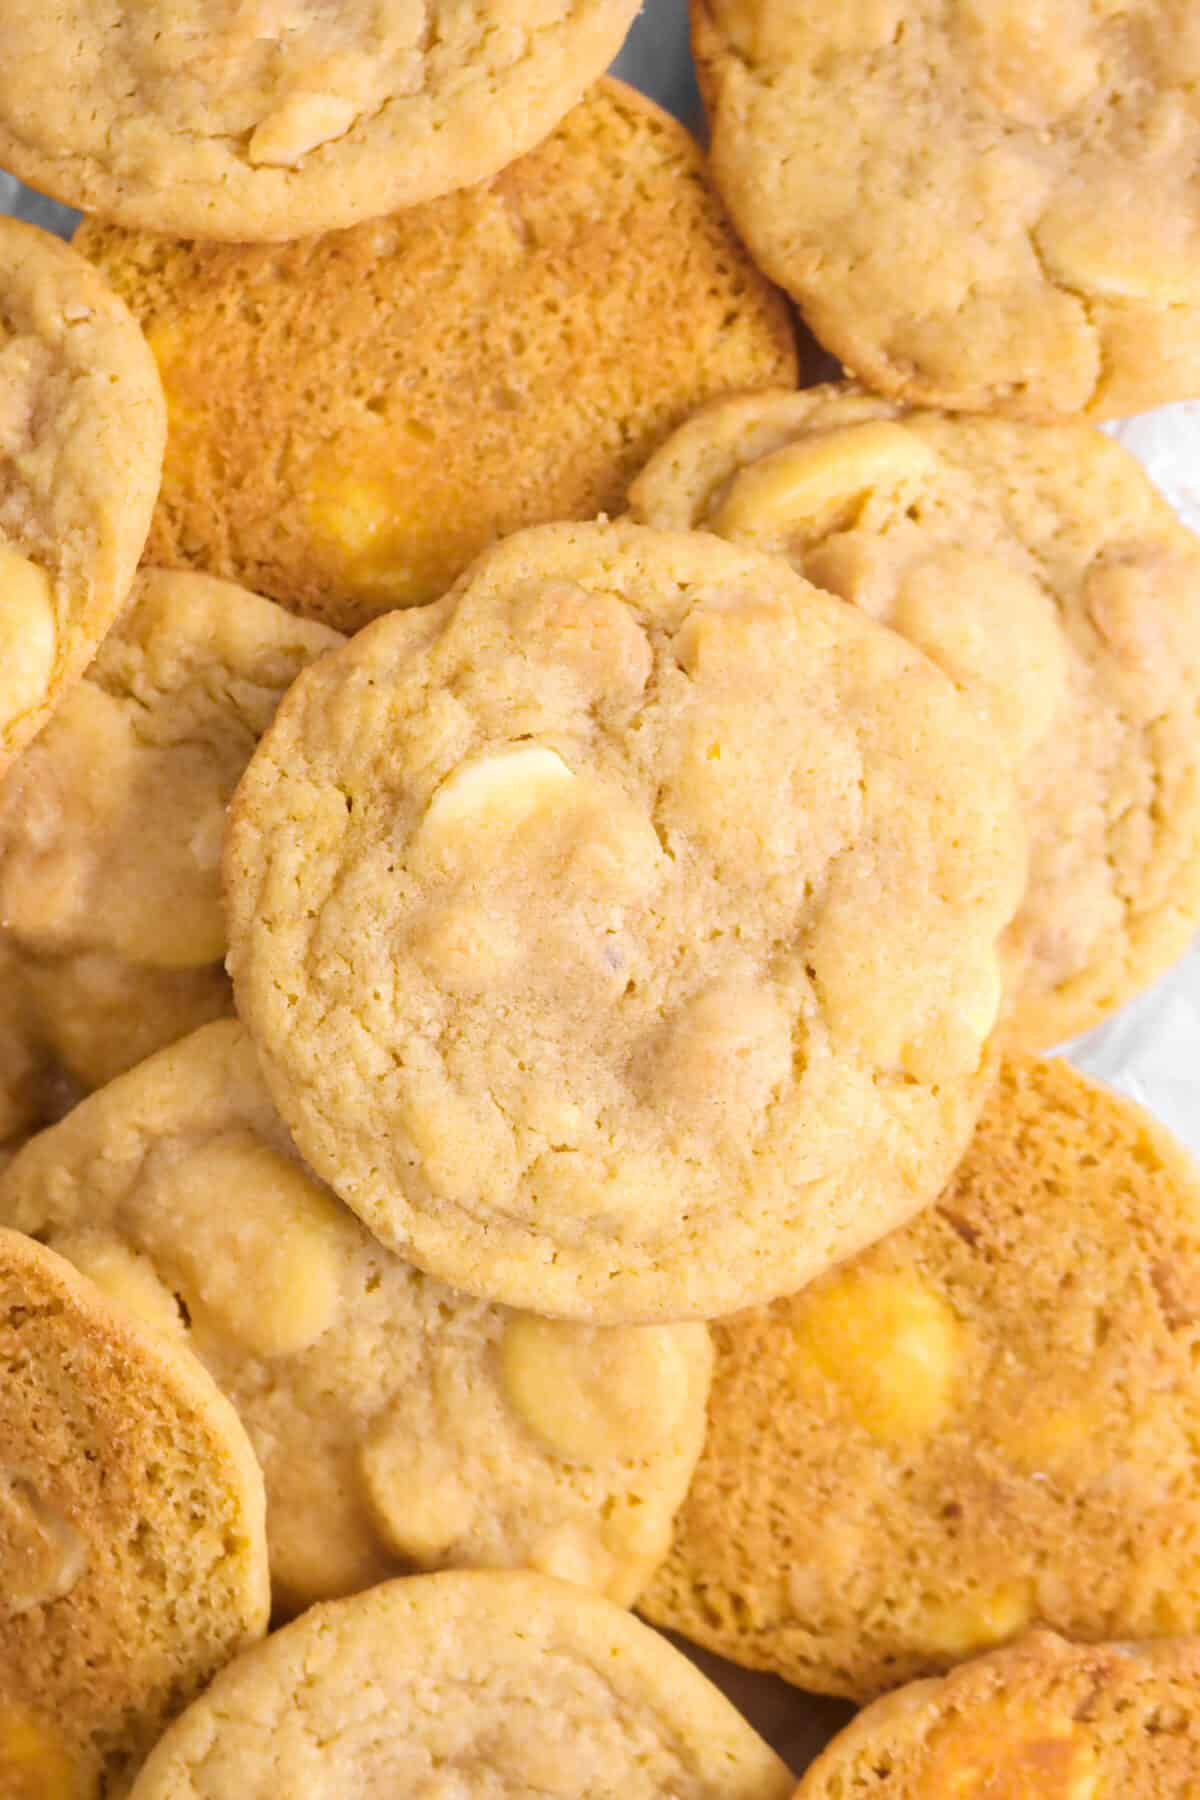 ten white chocolate macadamia nut cookies on parchment with some upside down